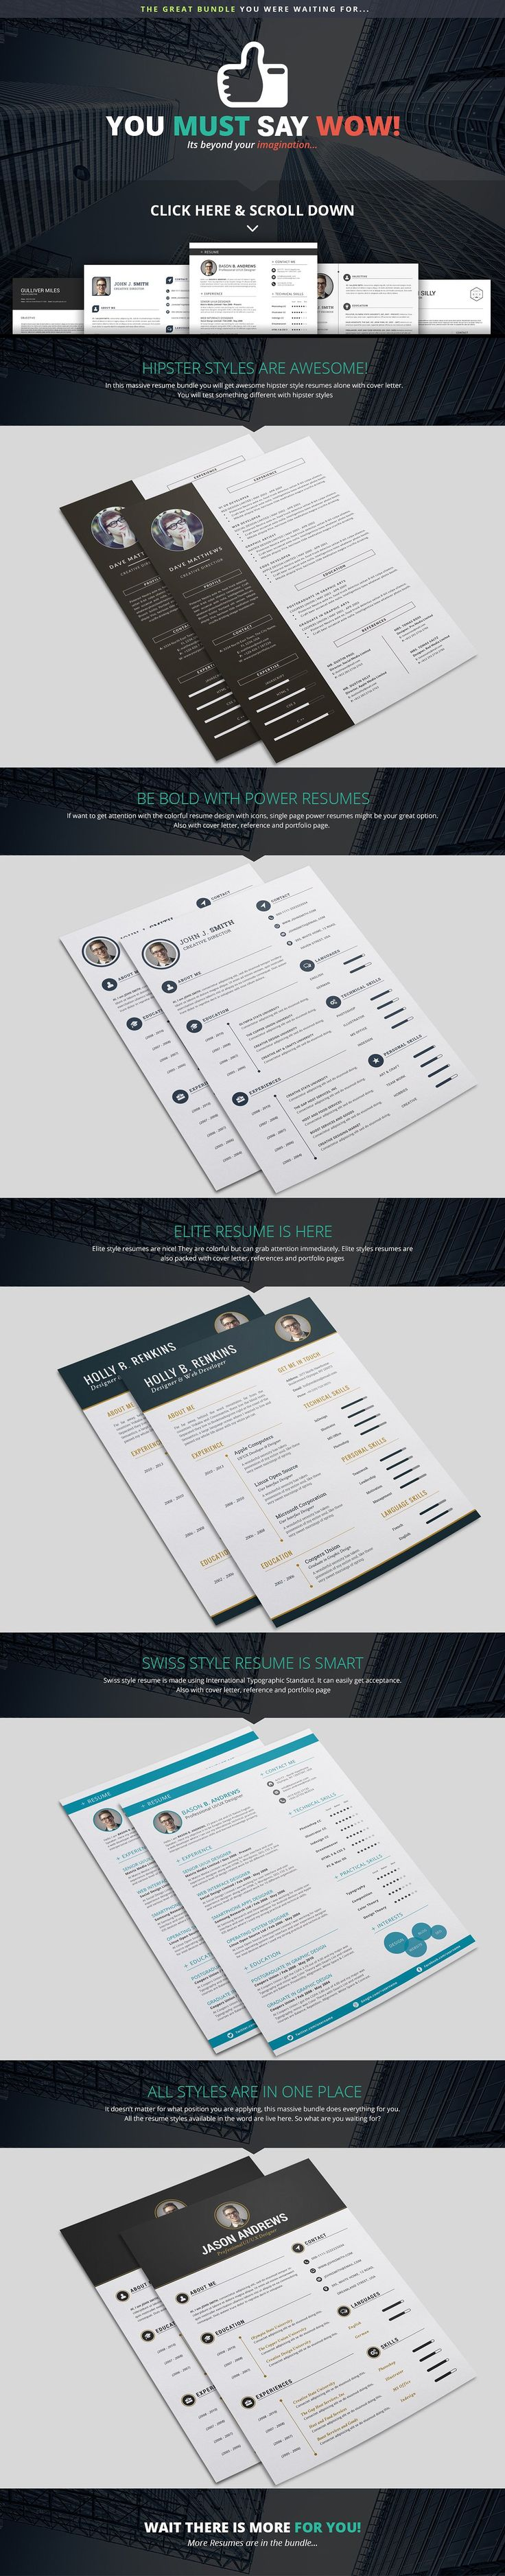 20 best infoviz images on pinterest info graphics infographic the 31 massive top sellers resume cv mega bundle the first time in template history and the biggest discounted bundle ever here at creative market malvernweather Image collections